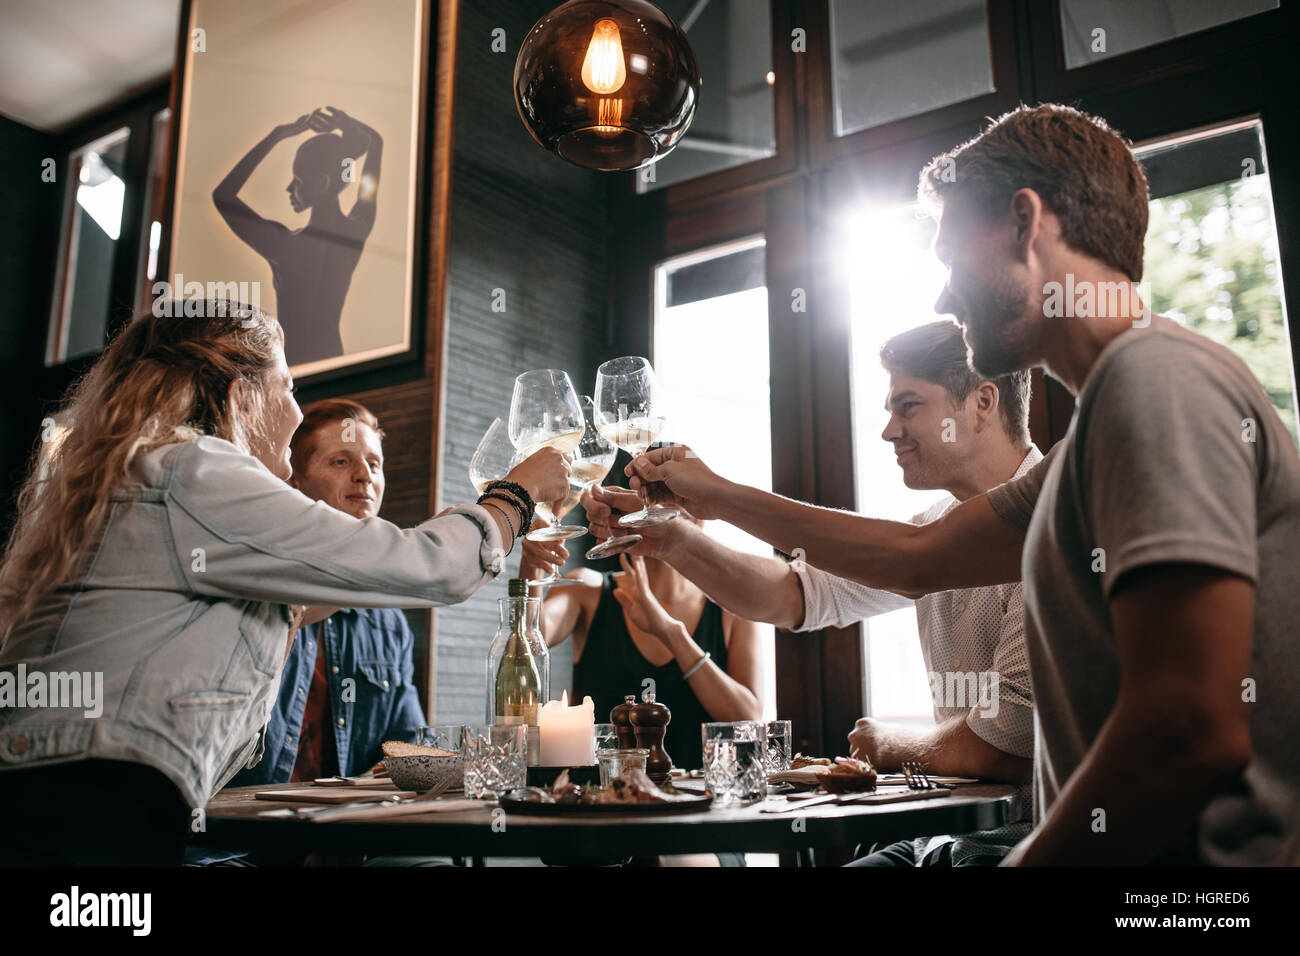 Young man and woman sitting at table and toasting drinks at restaurant. Group of friends toasting wine at cafe. - Stock Image